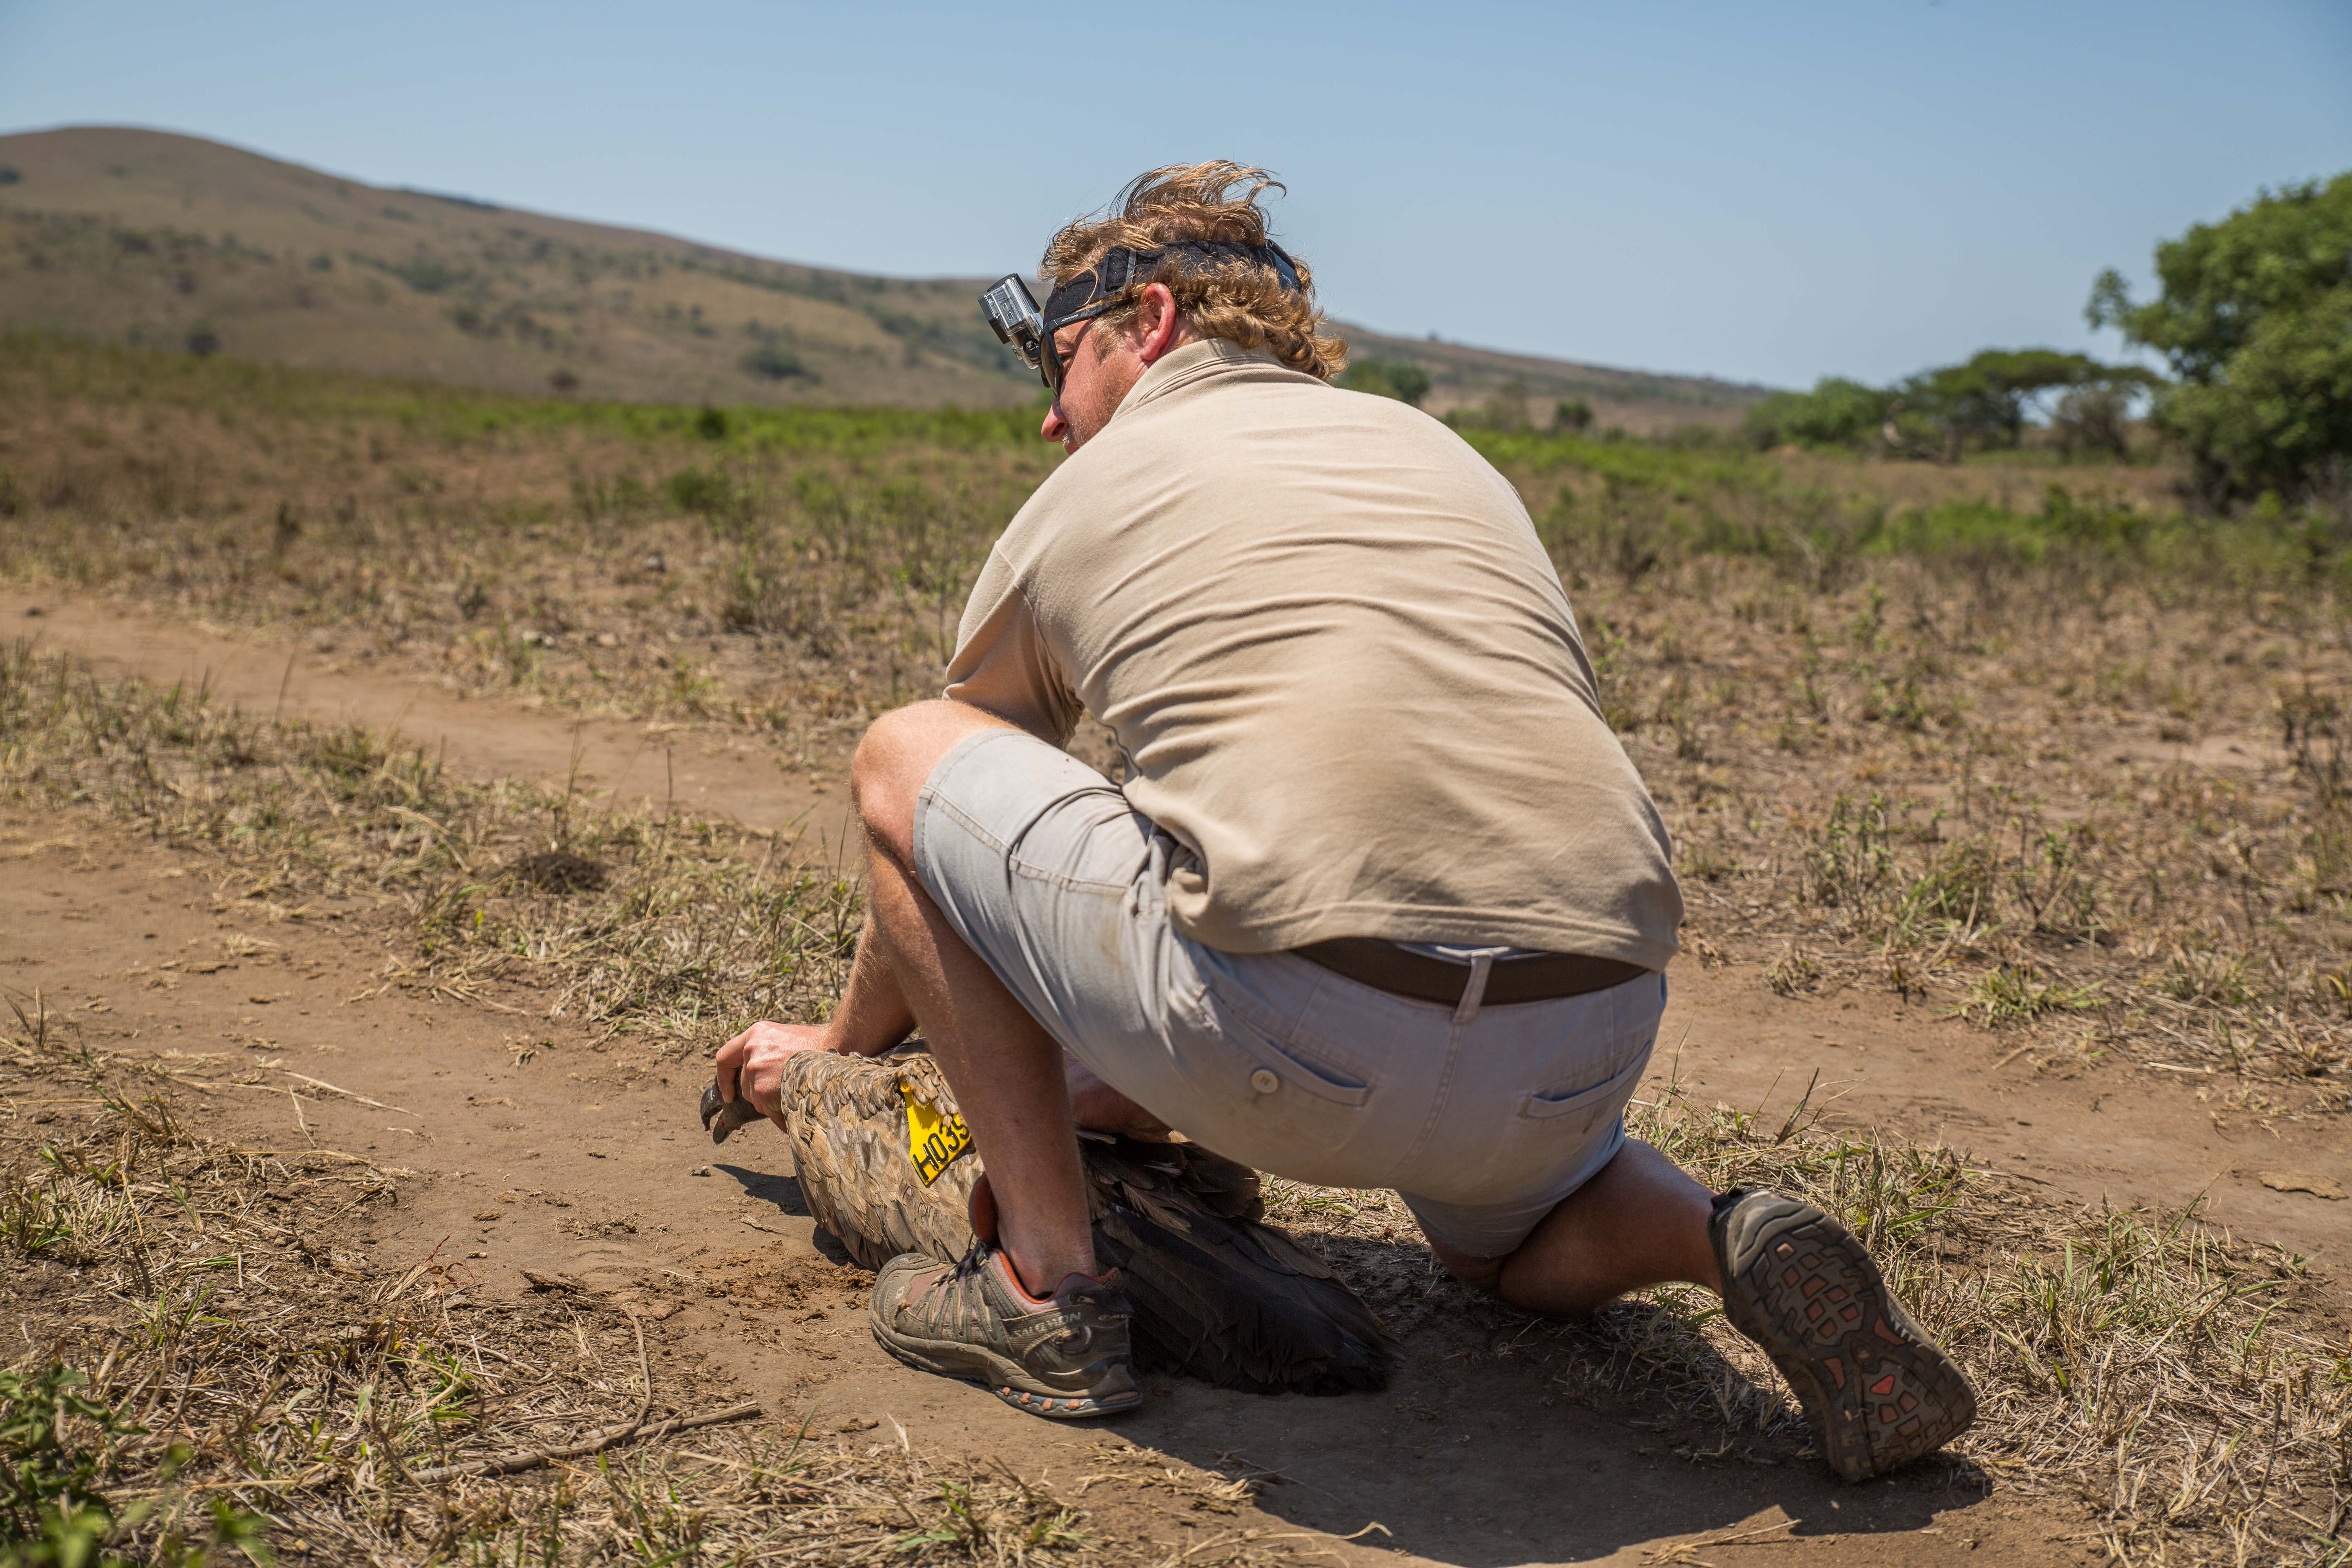 Vulture Release in South Africa